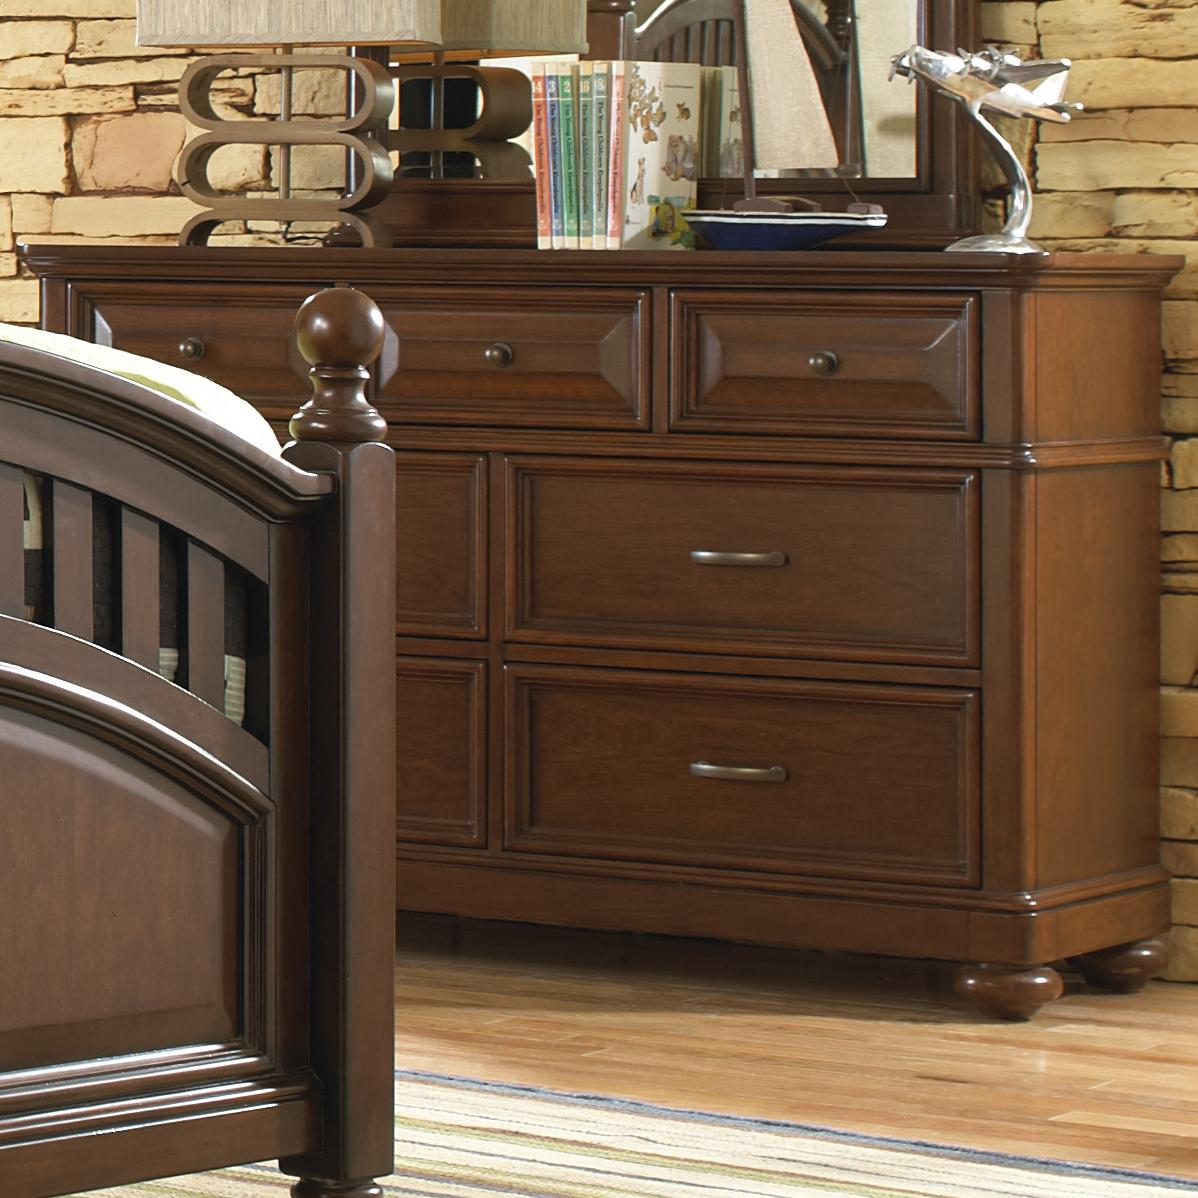 Morris Home Furnishings Edgewood Edgewood Dresser - Item Number: 8468-410